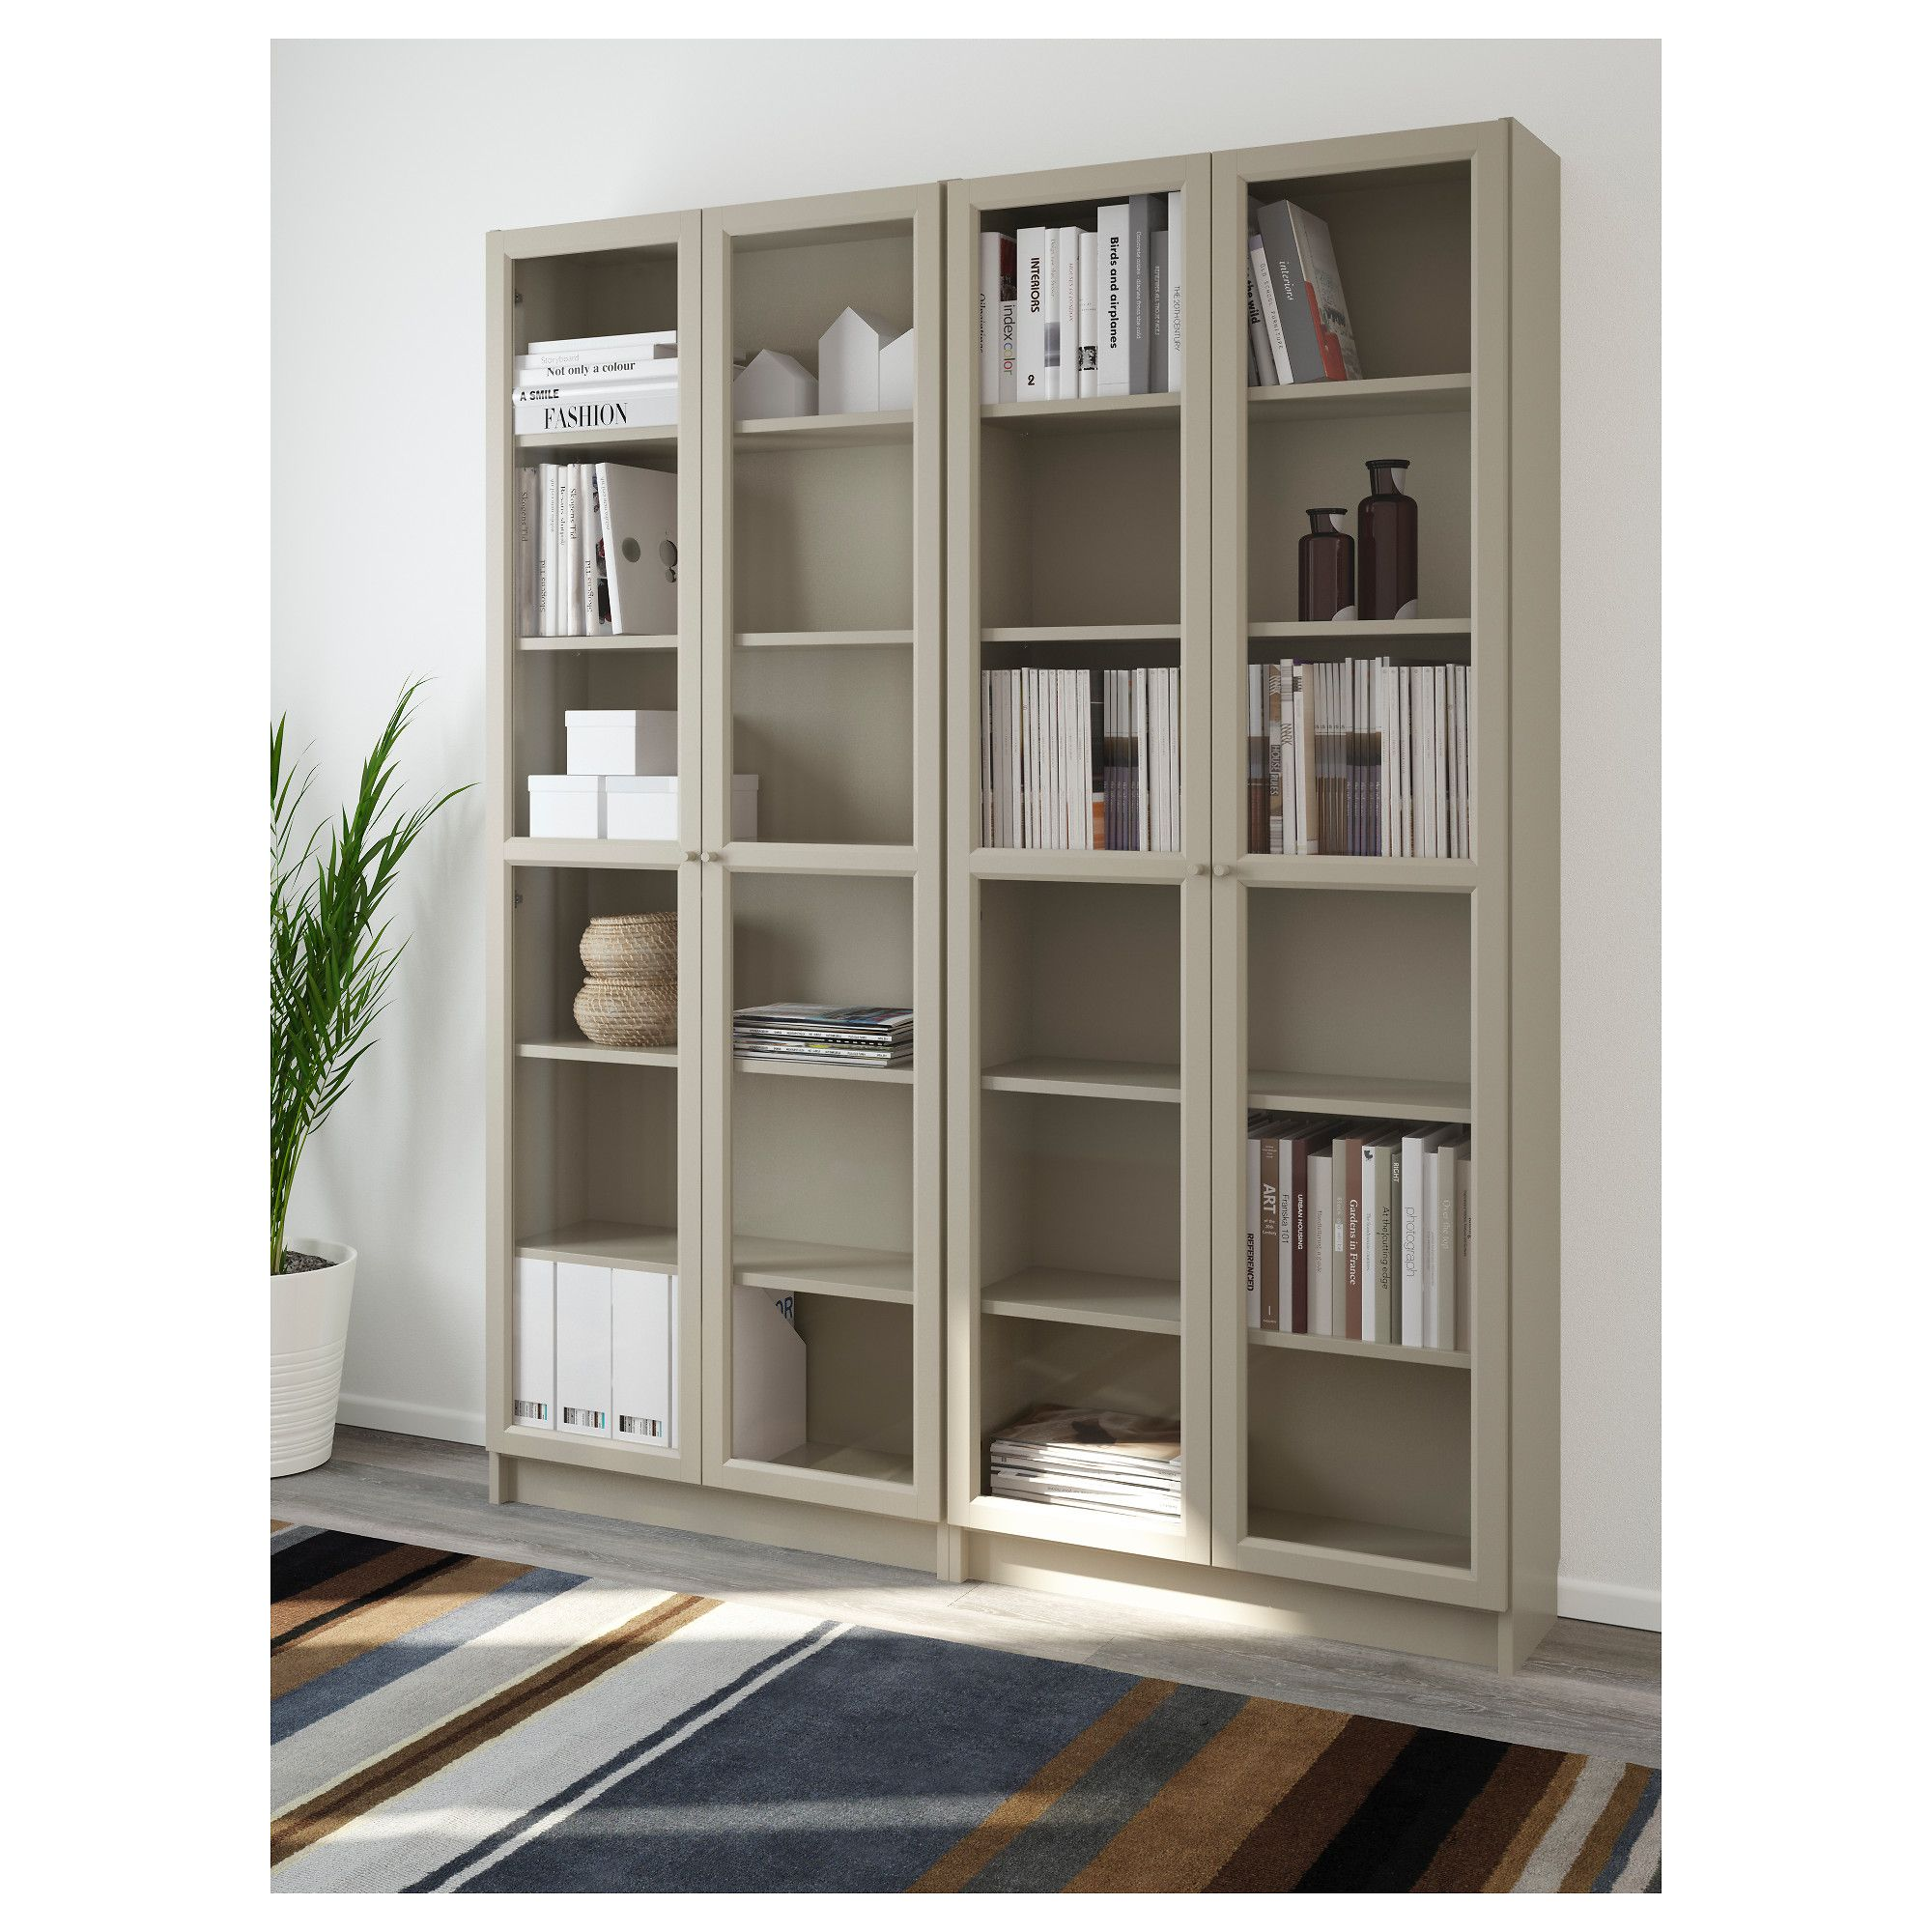 book home wide this bookshelf narrow staggered and office s cube it decorative cubed bookshelves design of is bookcase configuration in white bookcases shelves shelf